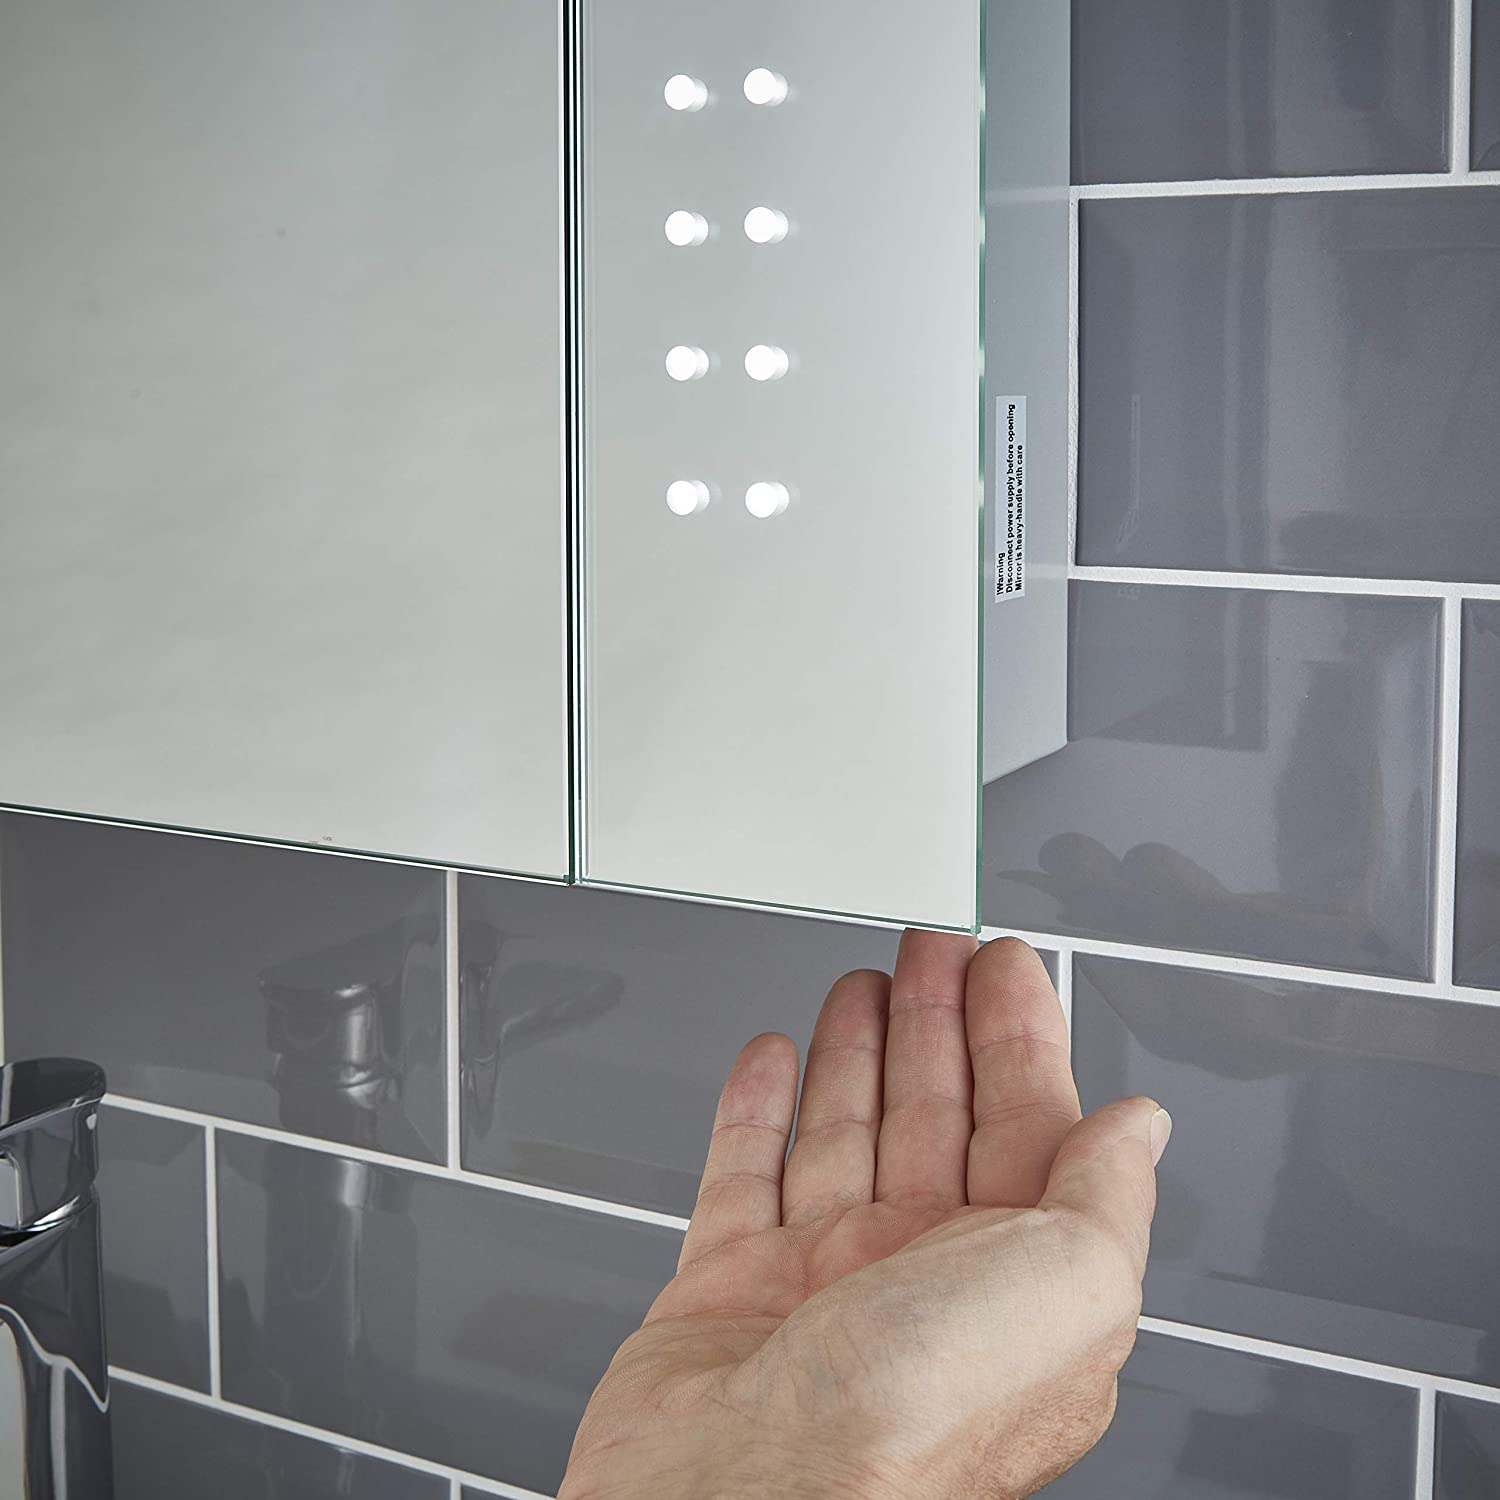 X 141mm H Shaver Socket /& Sensor Switch Fully Certified to British Standards 500mm D Pebble Grey Hollis LED Illuminated Bathroom Mirror Cabinet with Demister W X 700mm